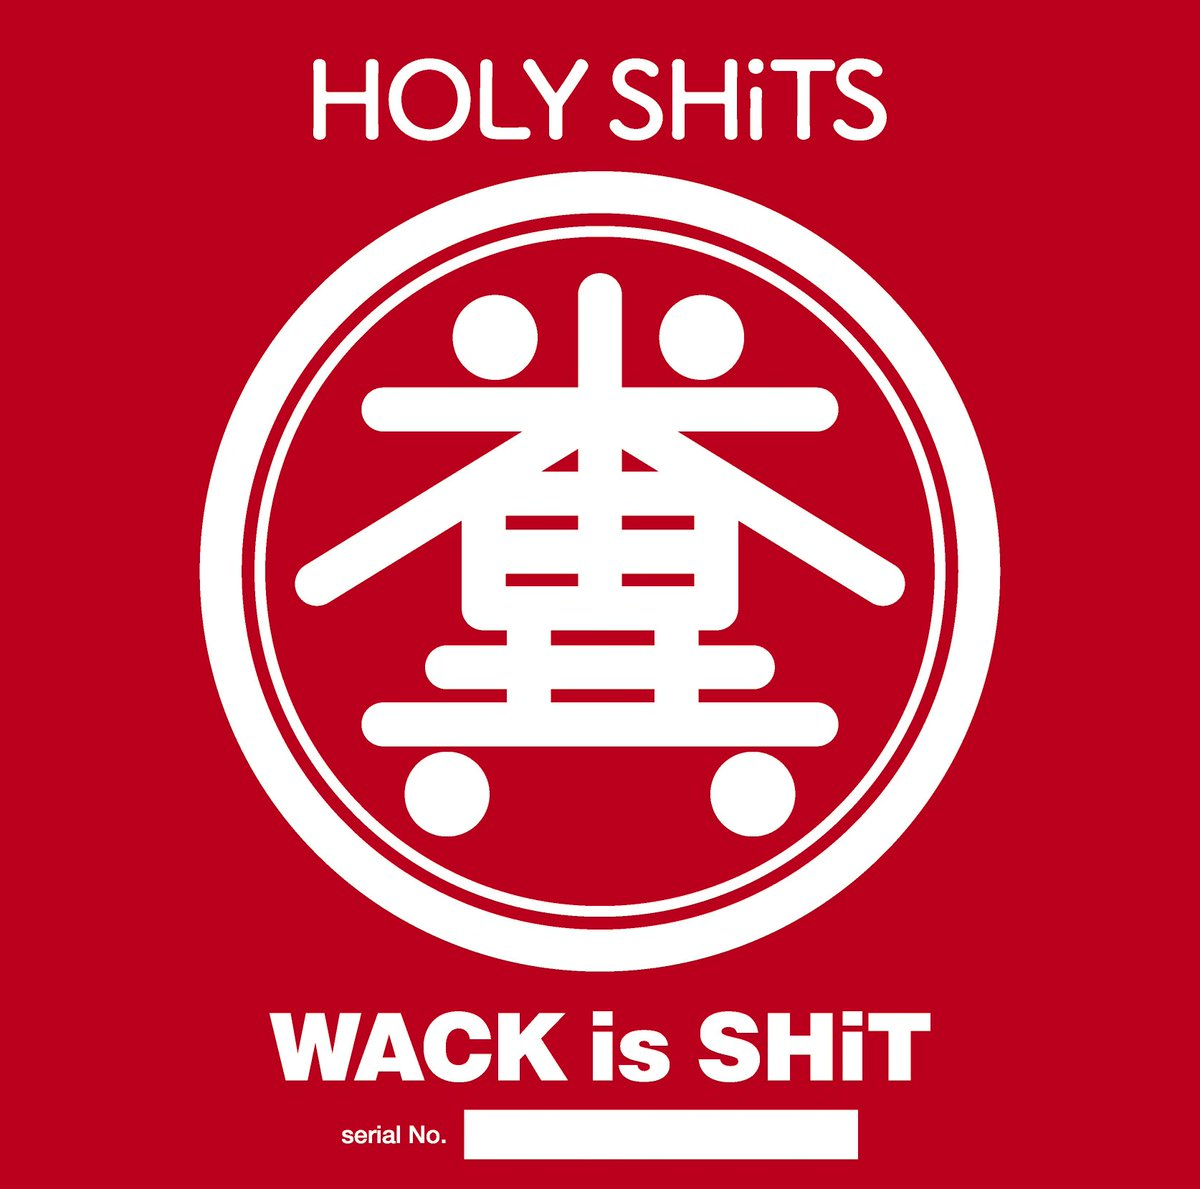 WACK is SHiT